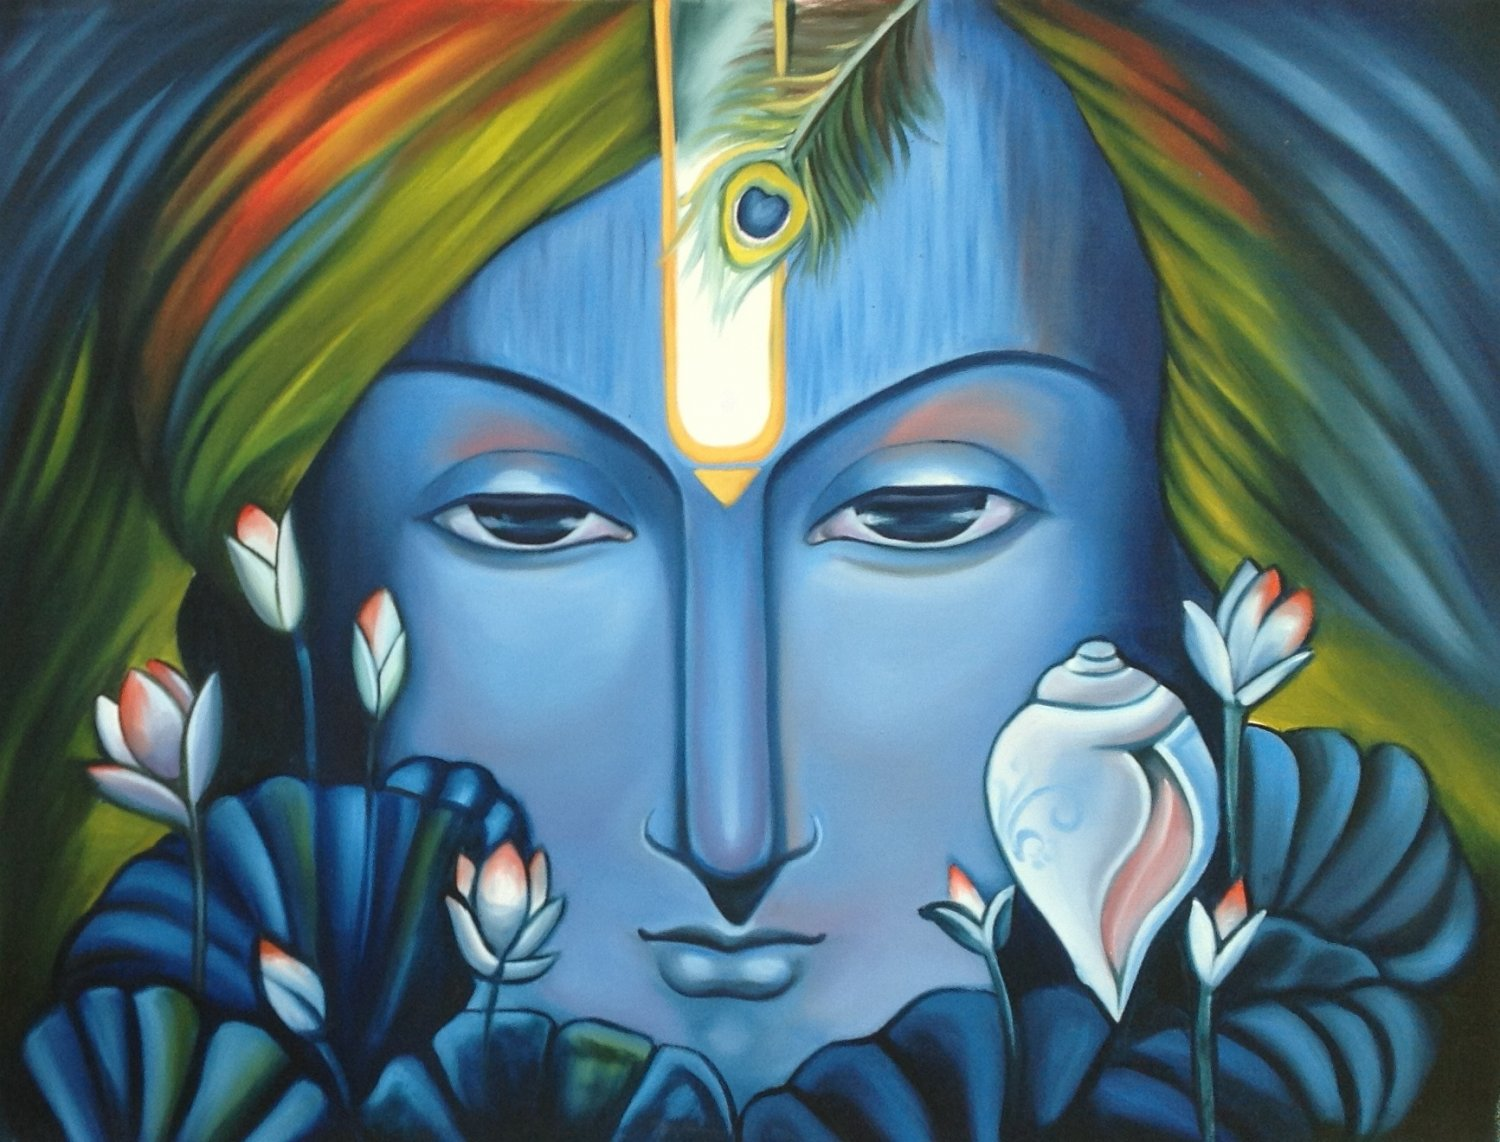 Krishna Art Handmade Indian Hindu Deity Portrait Oil on Canvas Decor Painting